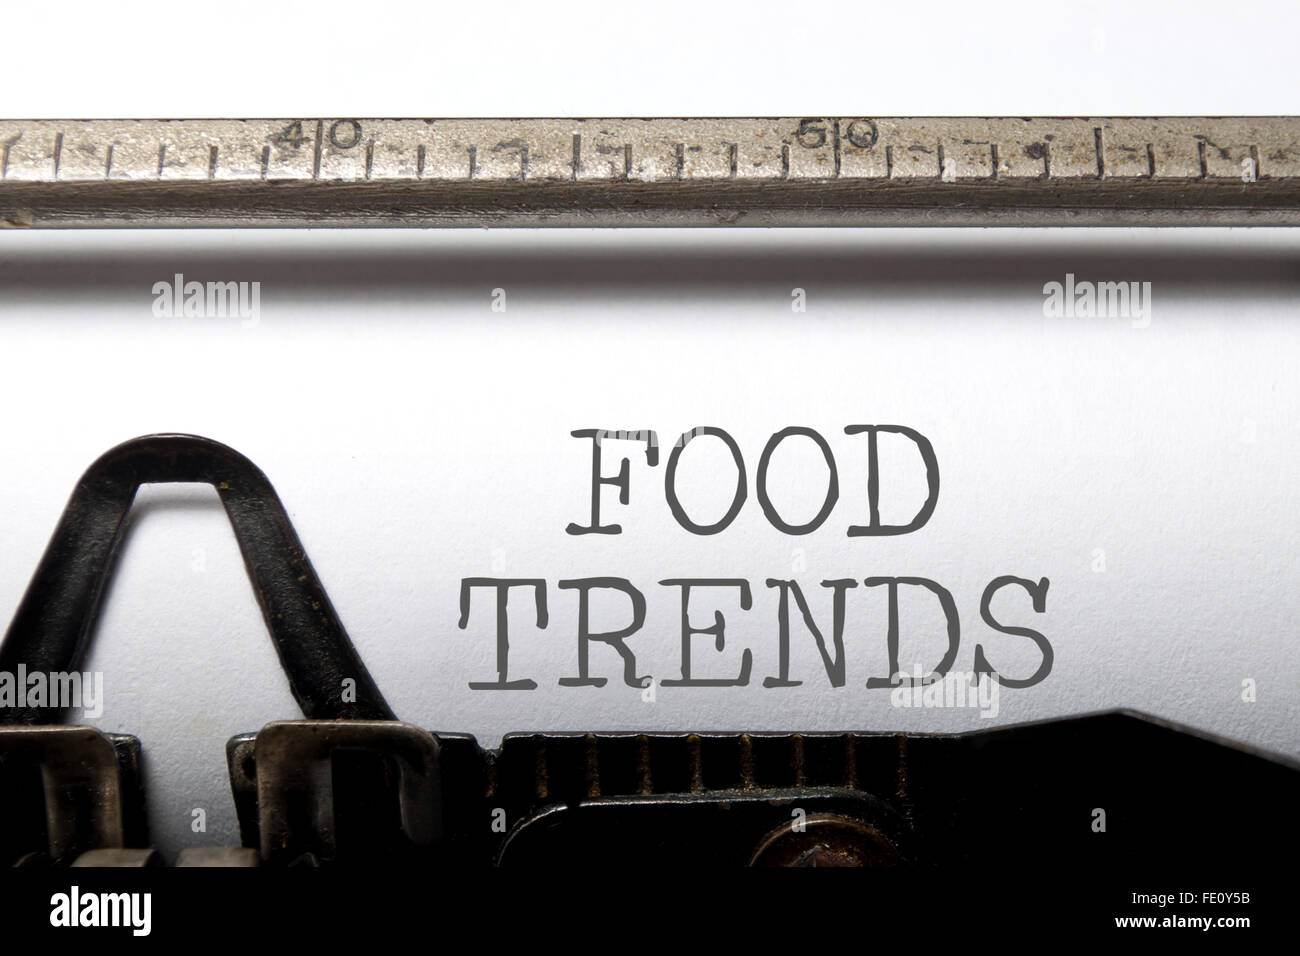 Food trends printed on an old typewriter Stock Photo